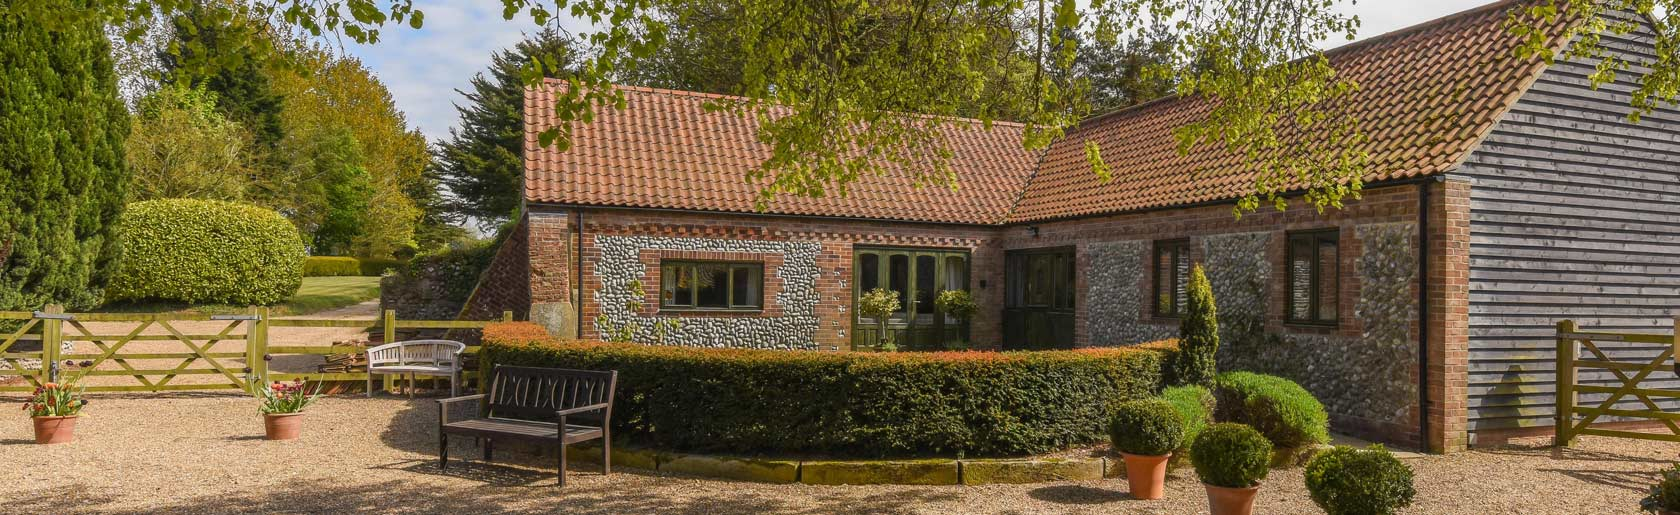 Wash House, Rookery Farm Holiday Accommodation, north Norfolk